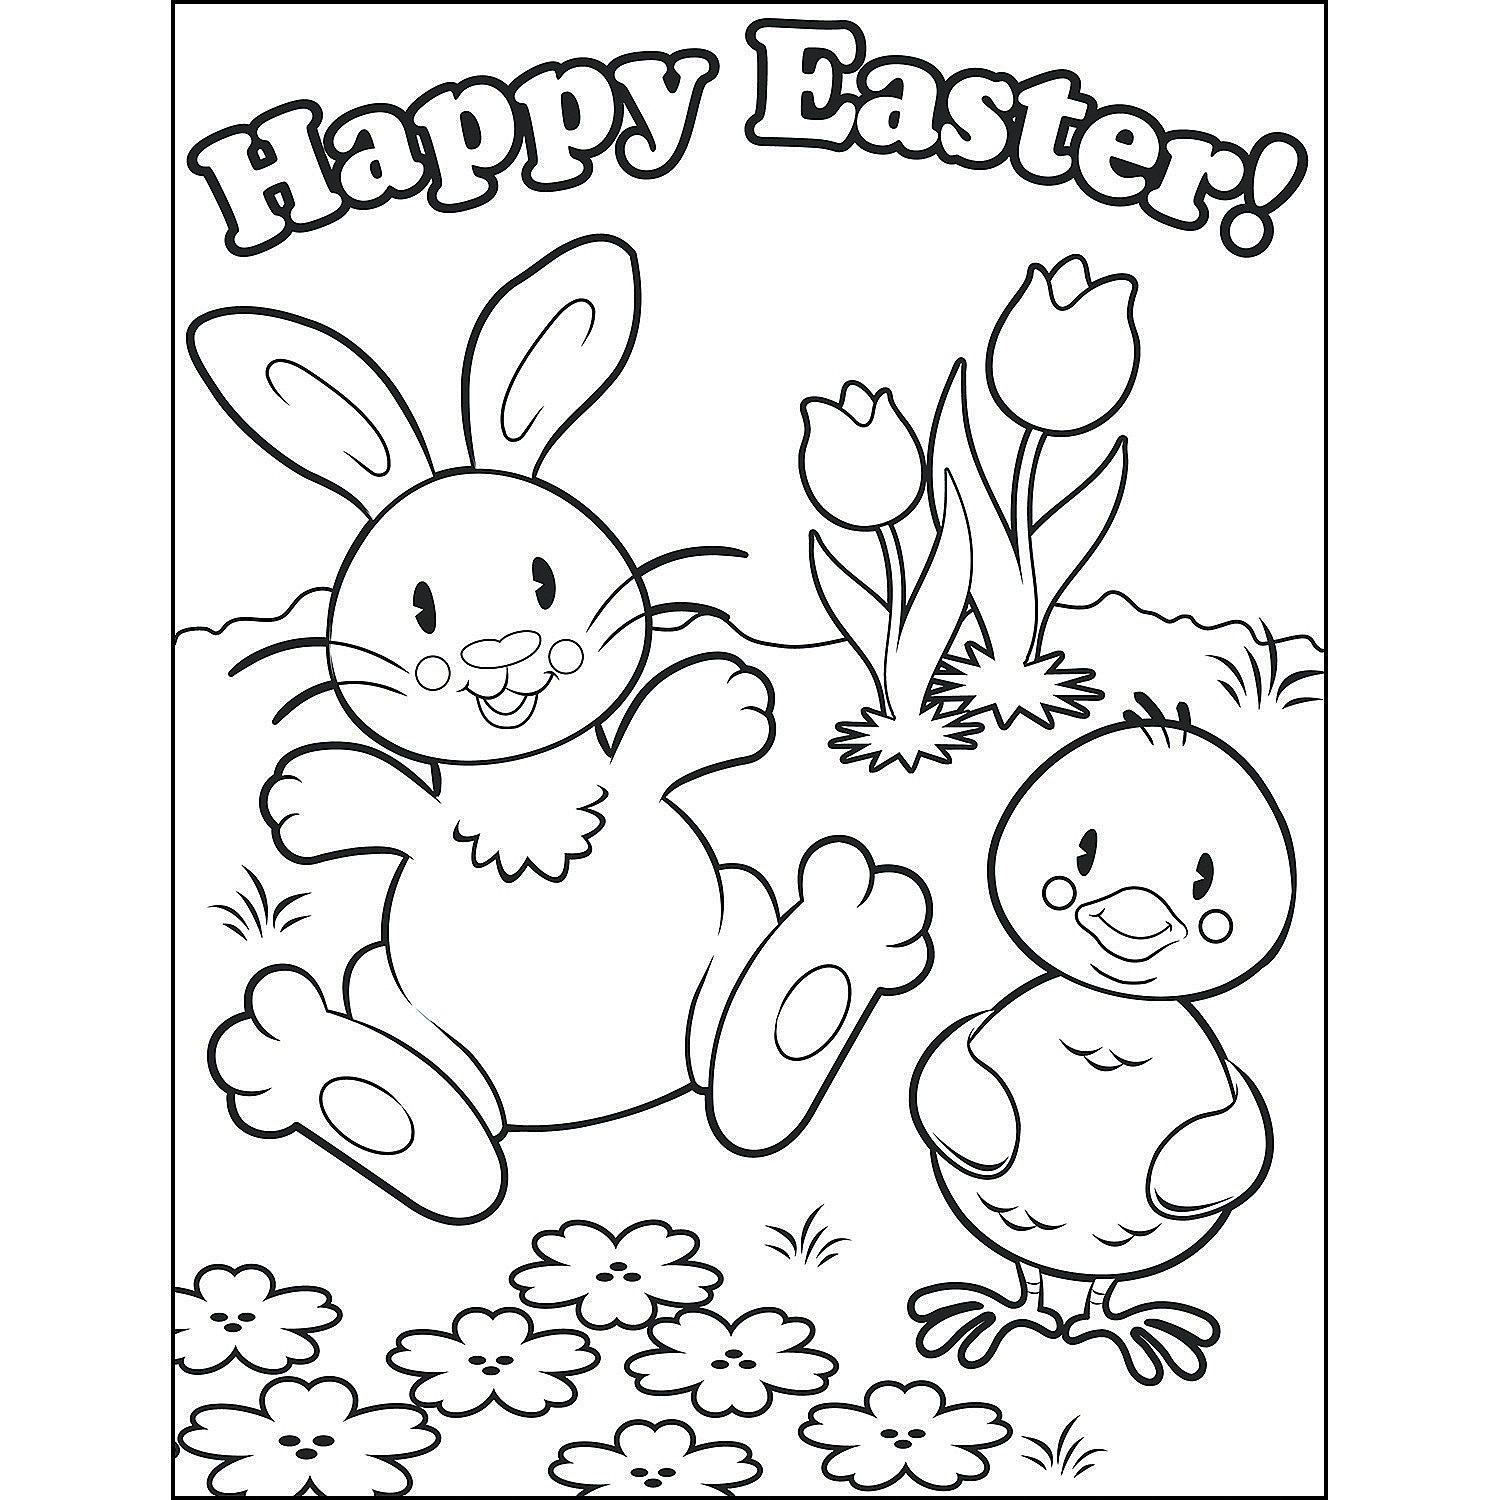 It's just a photo of Astounding Happy Easter Coloring Pages Free Printable